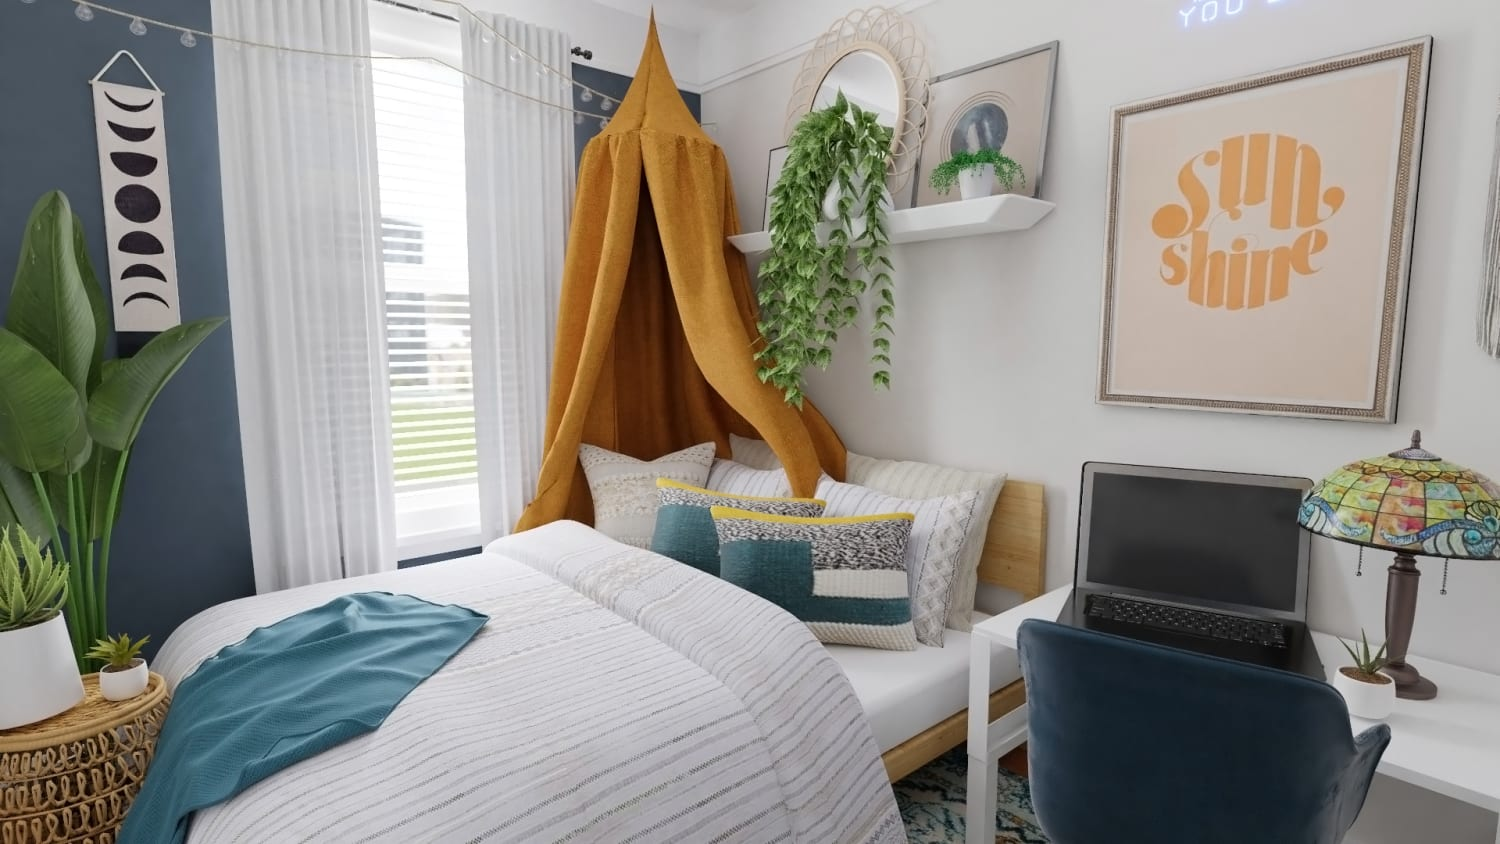 Small Space Ideas: Modern Eclectic Bedroom Design By Spacejoy